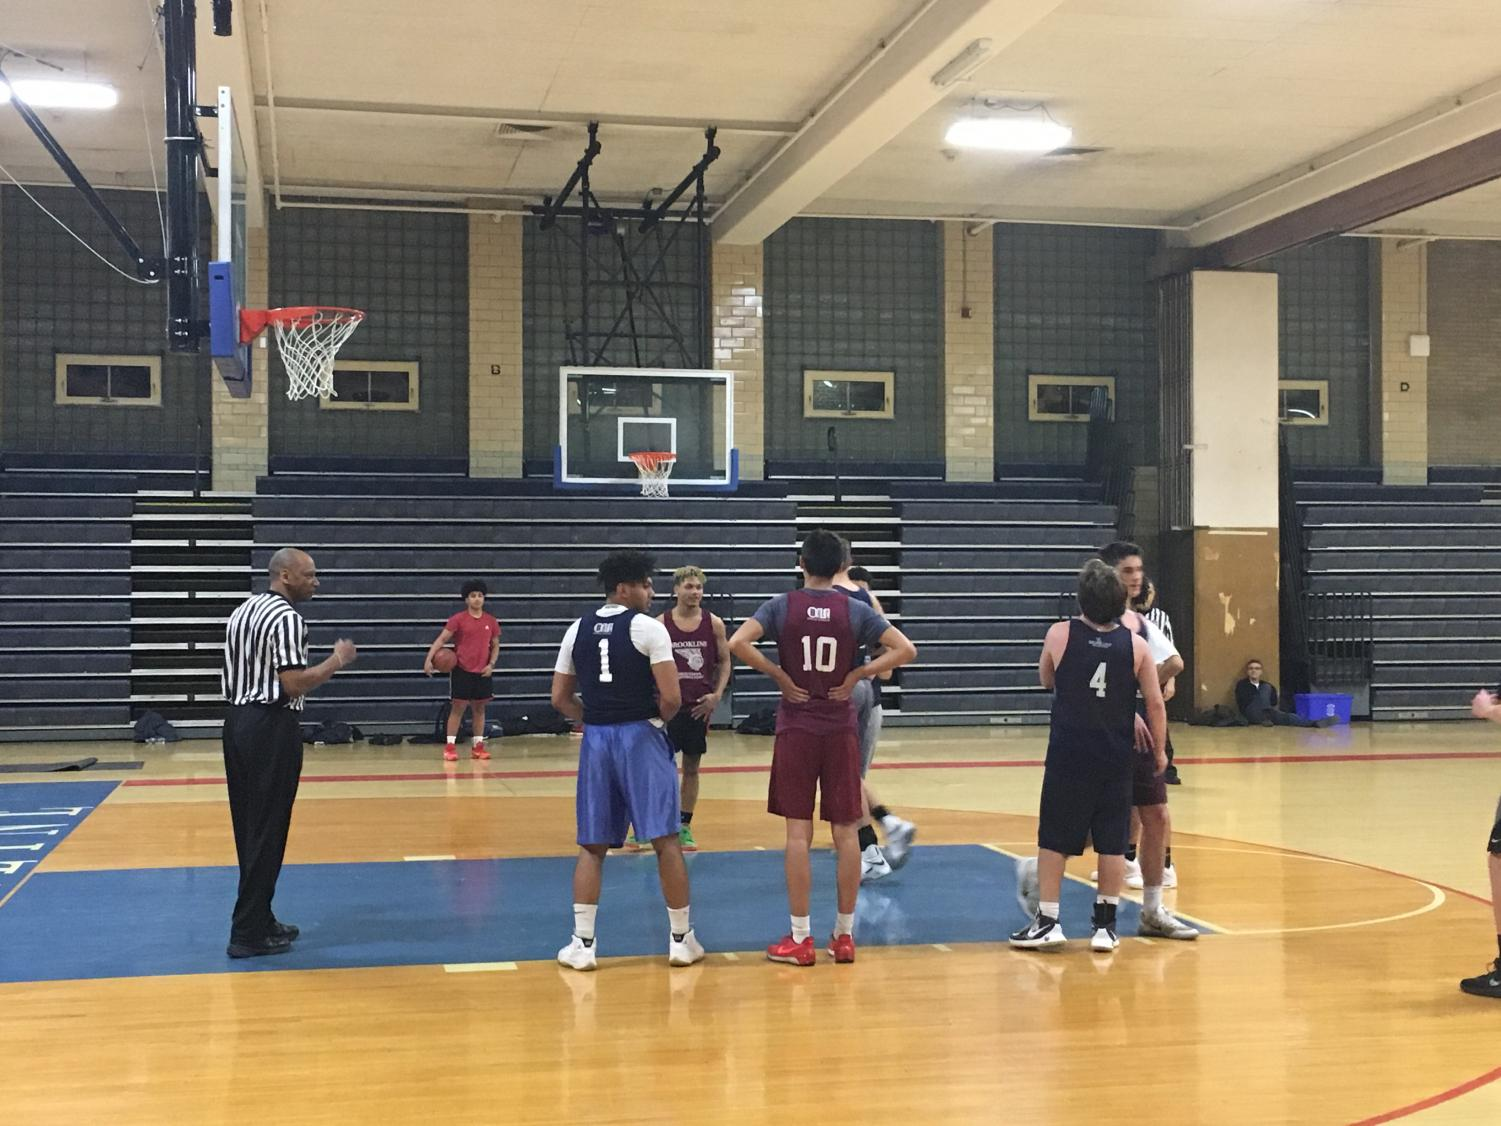 A player takes free throws for his team during a recreational basketball game. Teams usually play on various weeknights throughout the winter season.